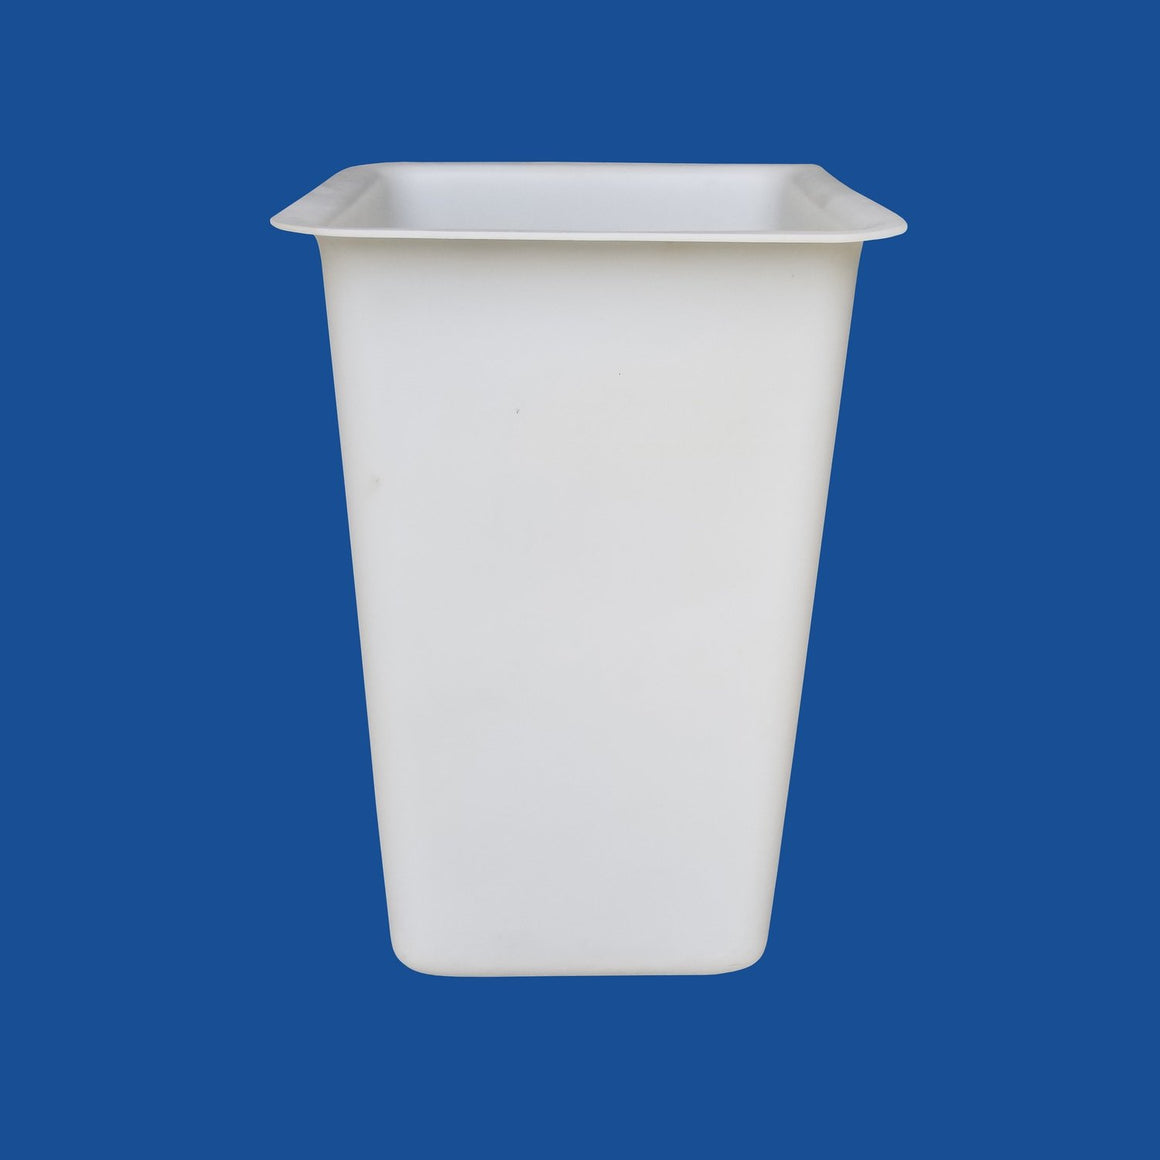 "Bucket Liner - 24"" x 24"" x 40"" - Single Man - Plastic Composites Co"